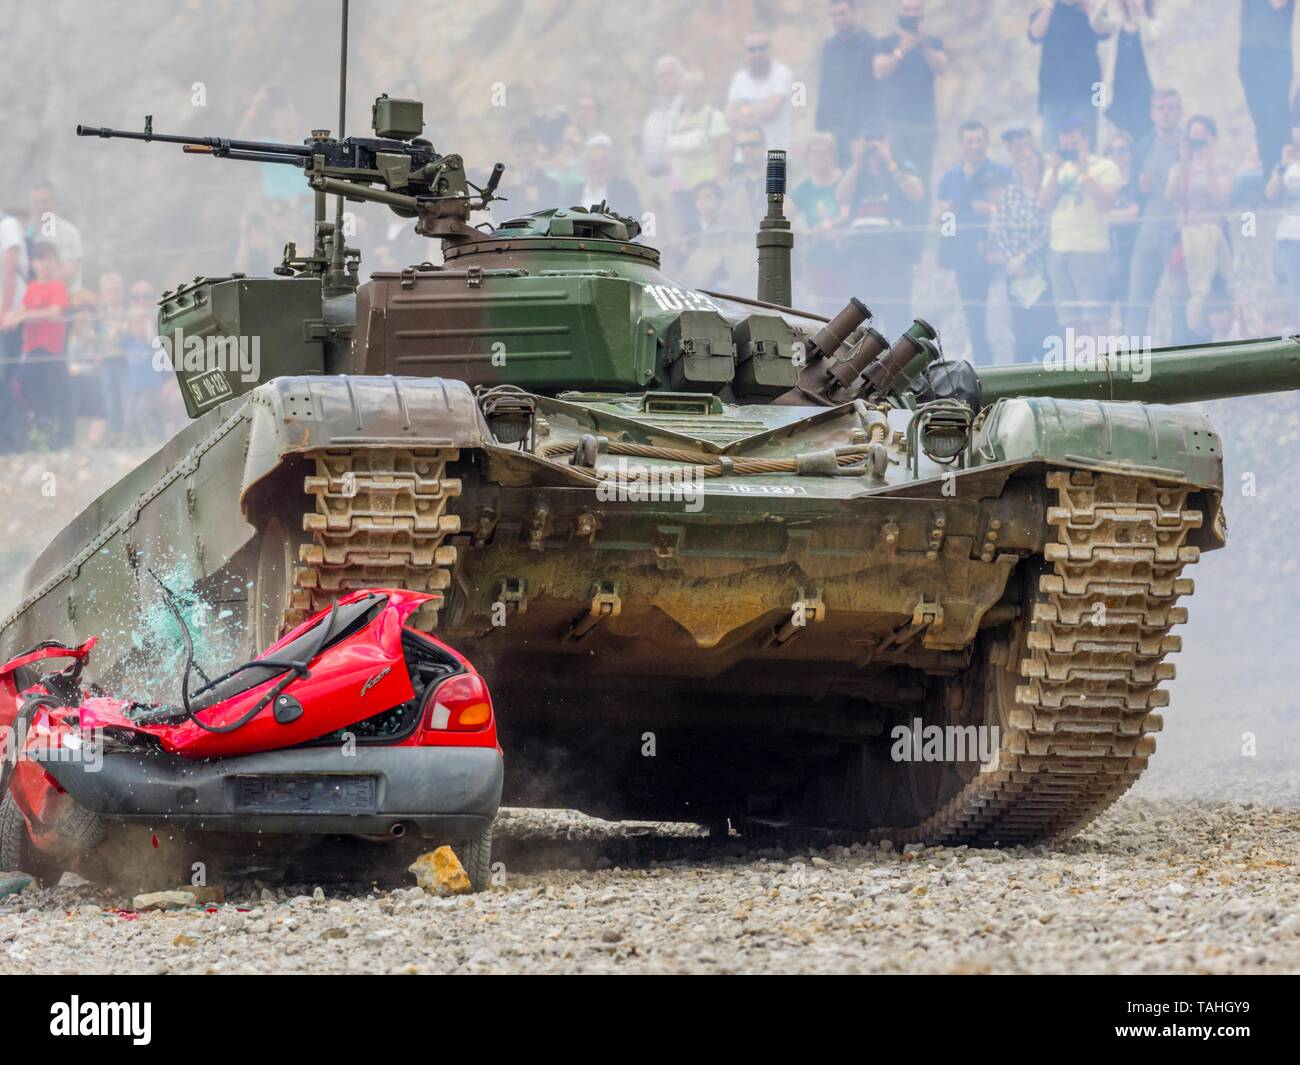 Tank driving over hopeless car vehicle during public military demonstration in Pivka Slovenia M84 MBT driving towards camera front frontal view - Stock Image